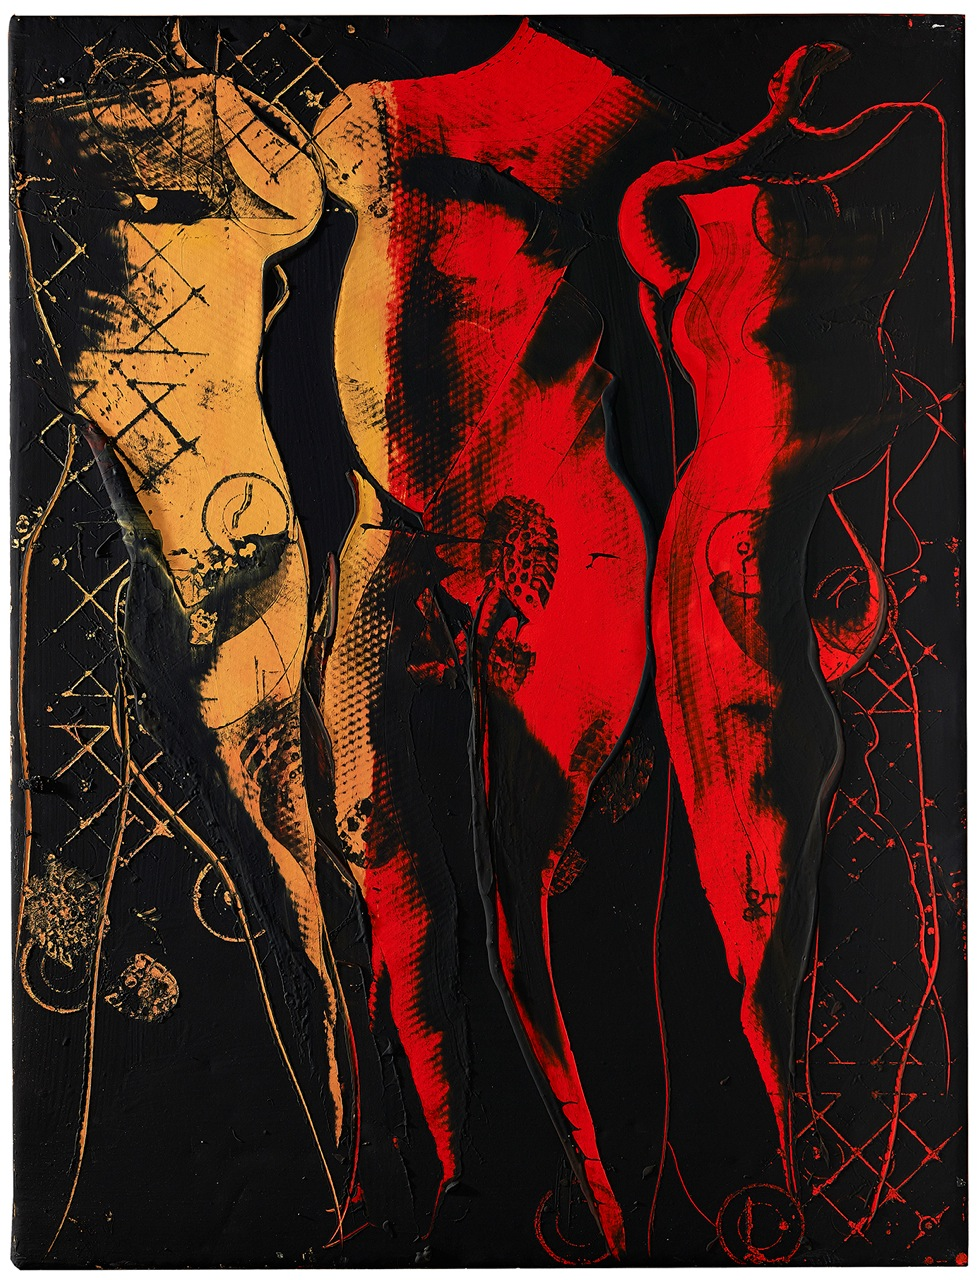 SOLD AGUSTI PUIG, Three figures under red radiance, mixed media on canvas, 62 x 48 in, 2017